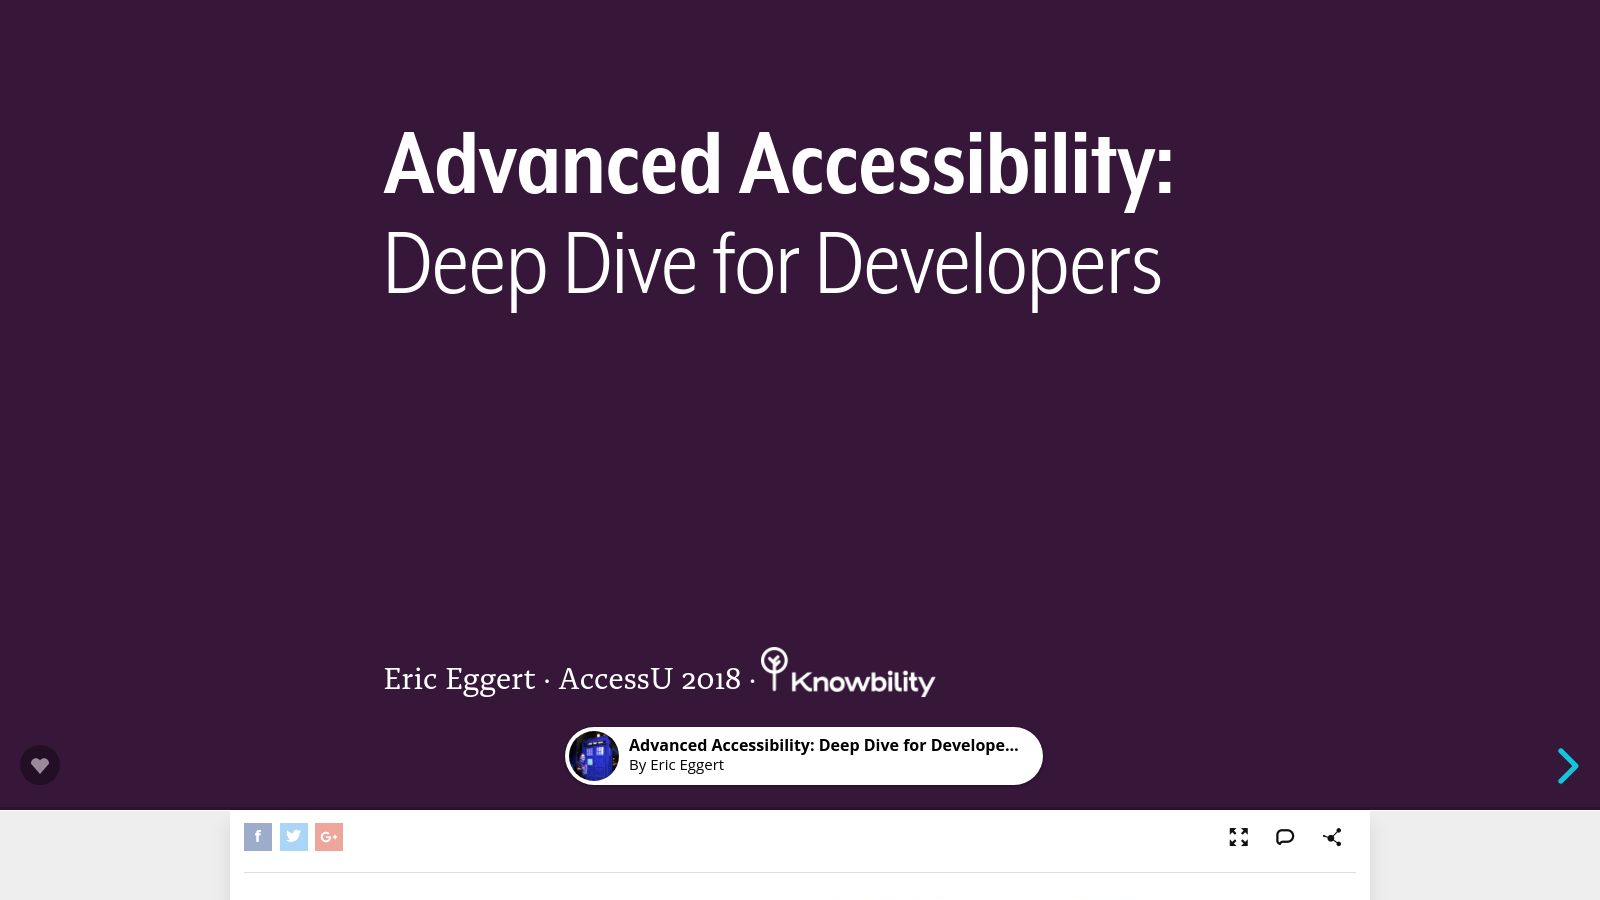 Advanced Accessibility: Deep Dive for Developers